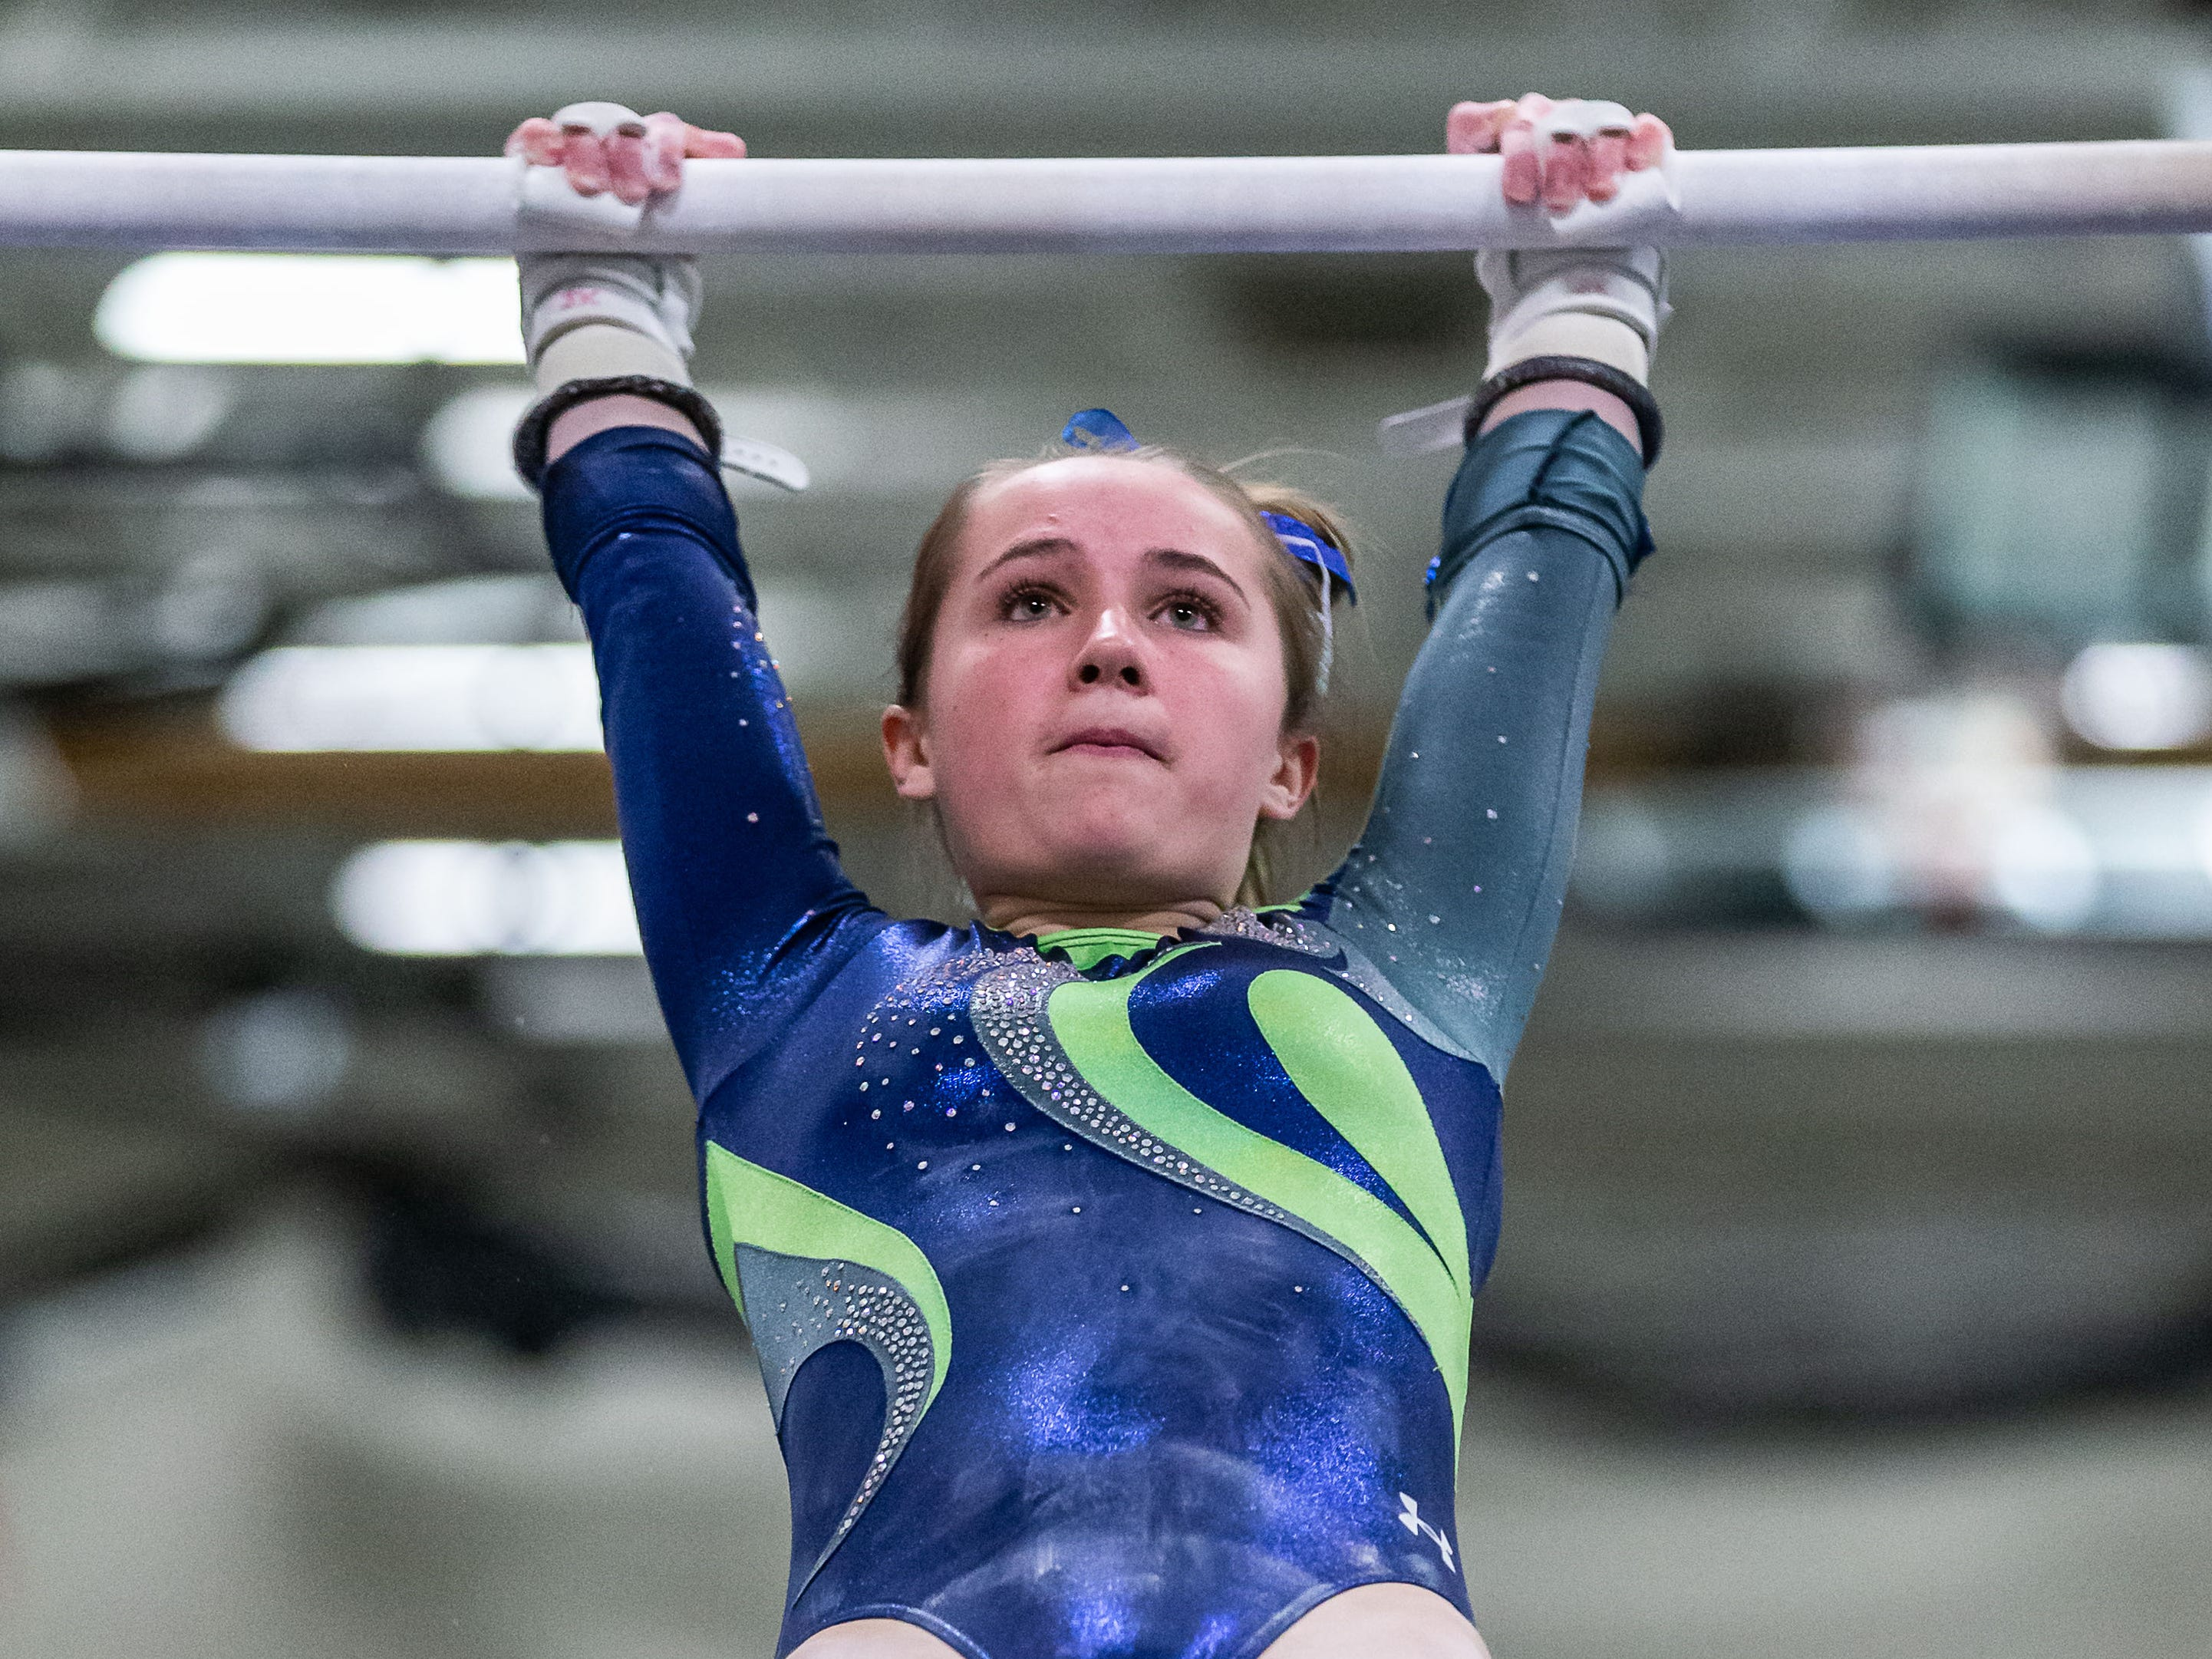 Whitefish Bay gymnast Sarah Kirchner competes on the bars during the meet at Nicolet on Thursday, Jan. 3, 2019.